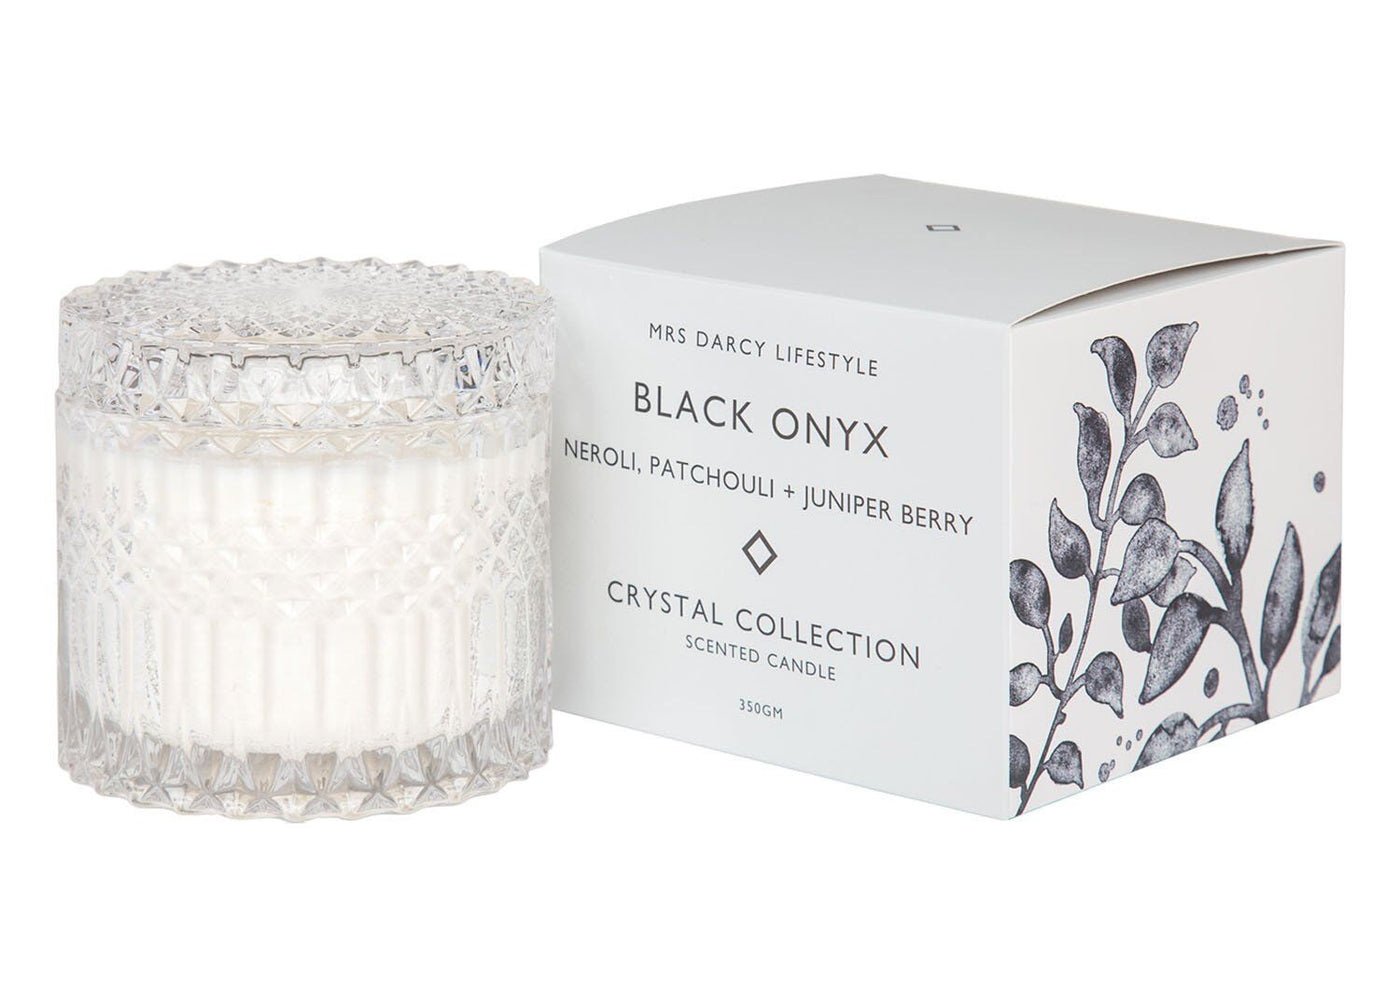 Black Onyx - Neroli, Patchouli + Juniper Berry